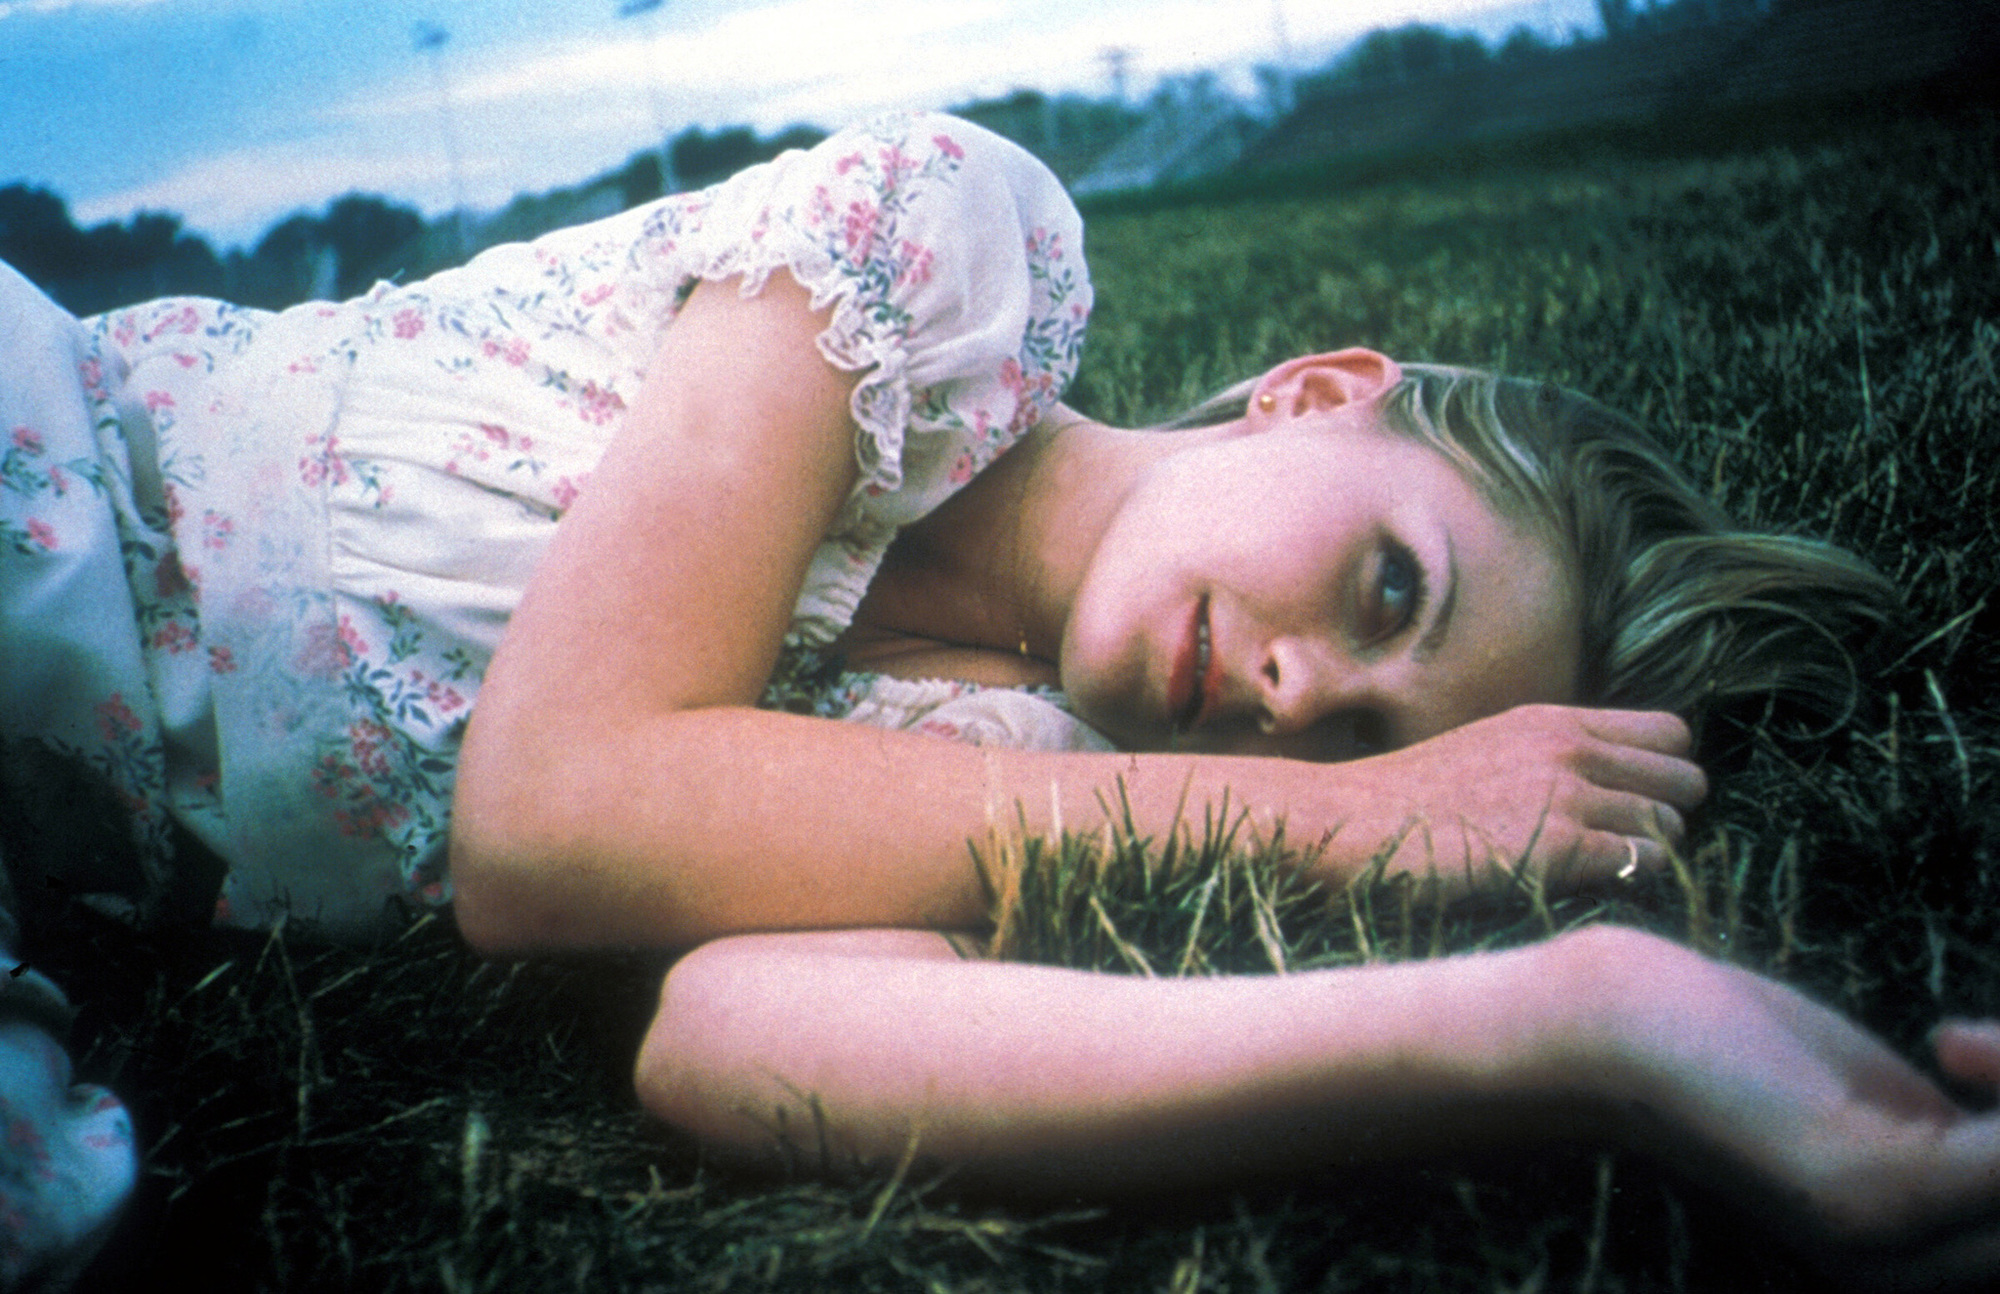 A still from the Virgin Suicides film, which was wonderful but I can only recommend against any attempt at a film adaptation of Middlesex. You will only ruin it.